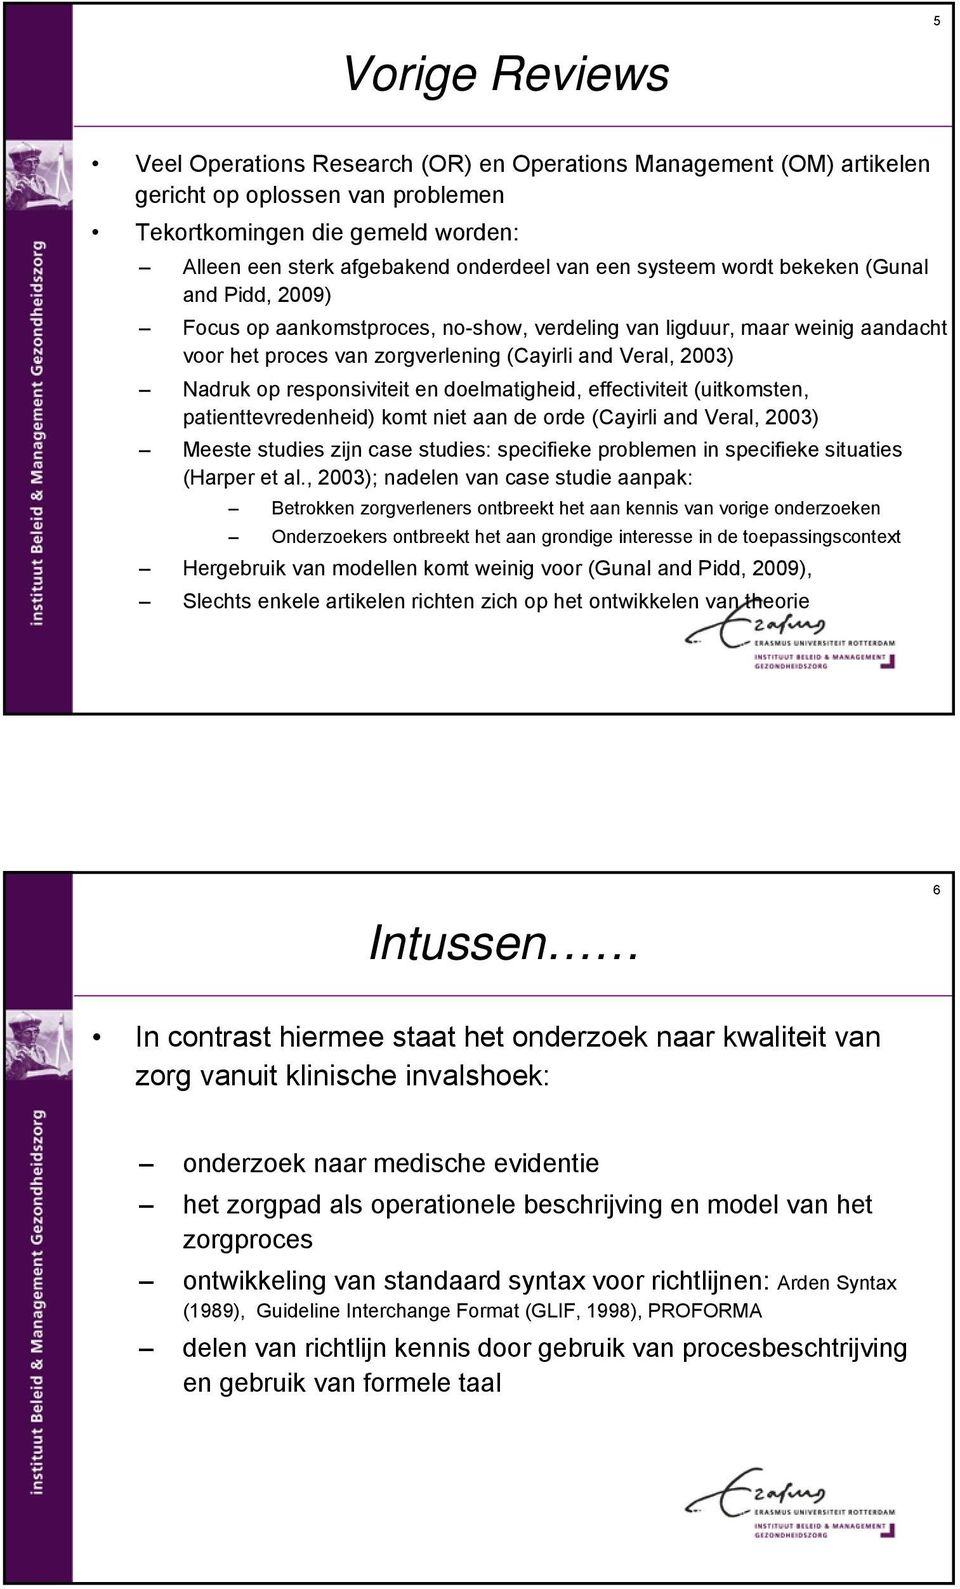 responsiviteit en doelmatigheid, effectiviteit (uitkomsten, patienttevredenheid) komt niet aan de orde (Cayirli and Veral, 2003) Meeste studies zijn case studies: specifieke problemen in specifieke